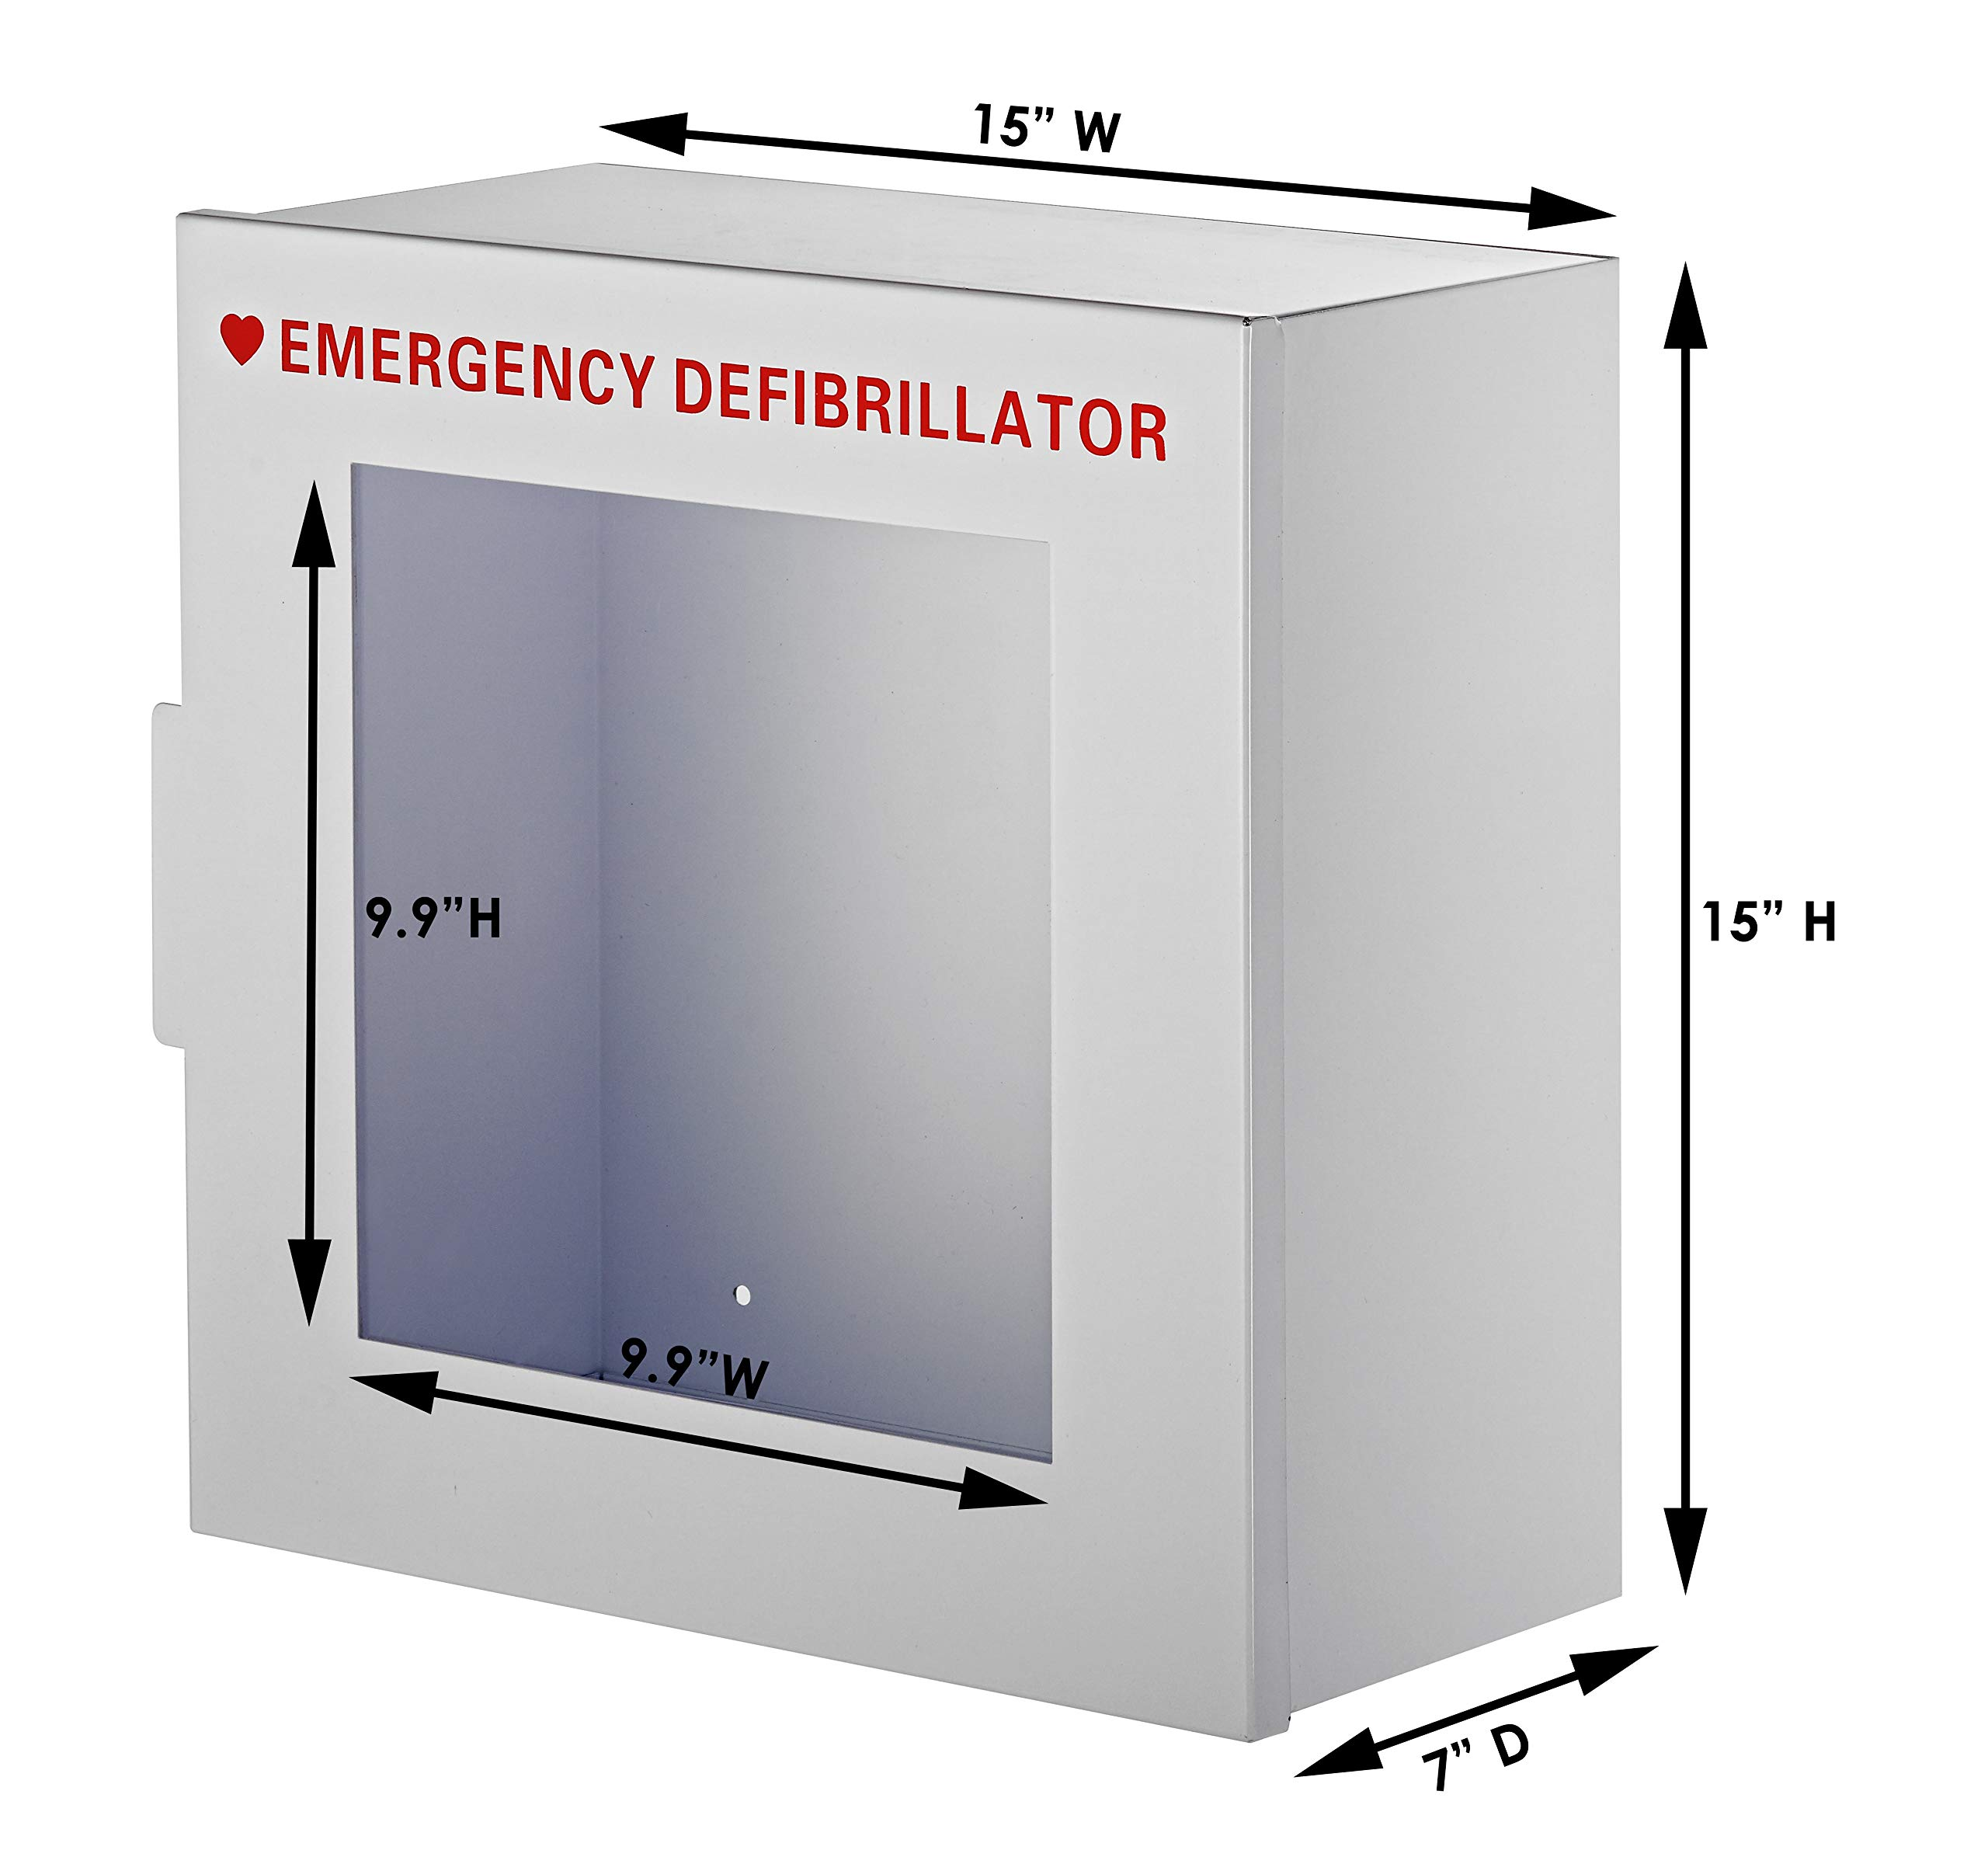 AdirMed Non-Alarmed Steel Cabinet Defibrillators 15'' W x 15'' H x 7'' - Standard Wall Mounted Enclosure - Easy Access Storage for Emergency Situation for Home & Office by AdirMed (Image #5)